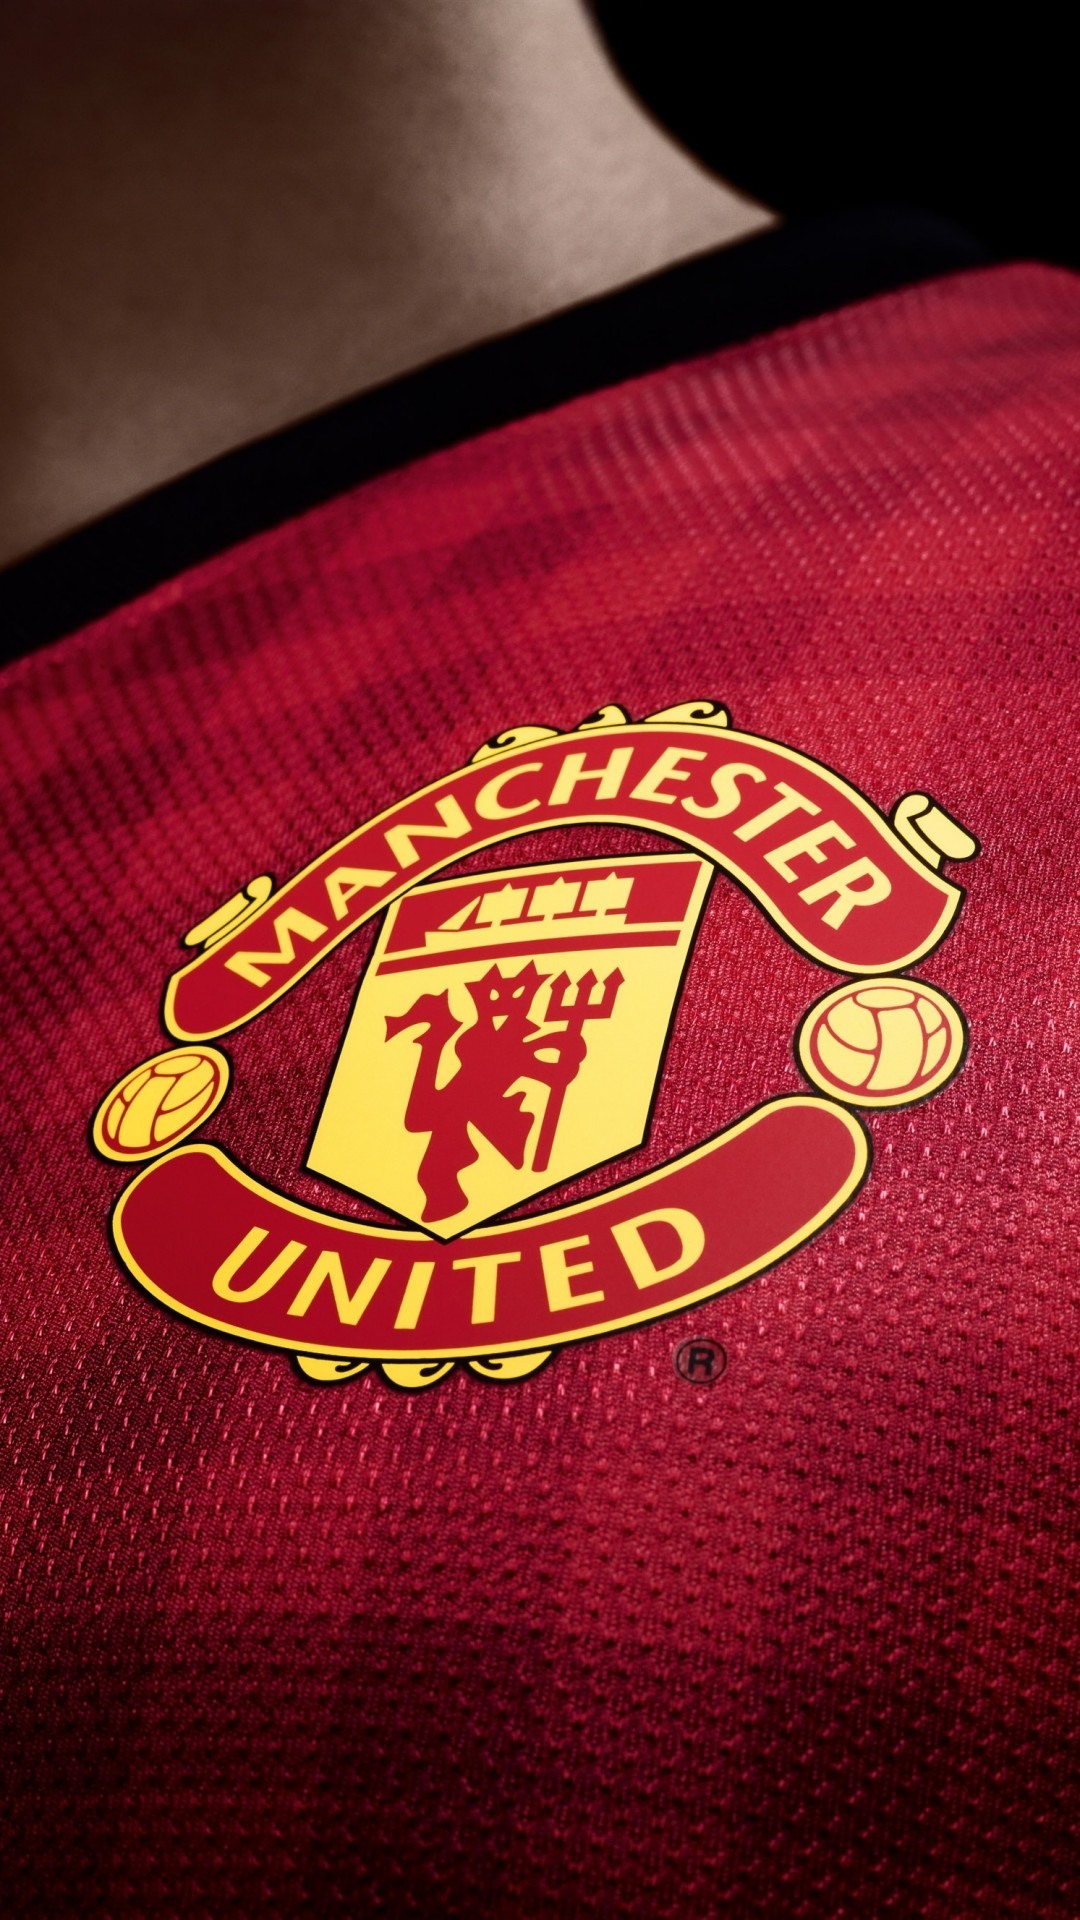 Manchester United Logo Shirt Wallpaper for SAMSUNG Galaxy Note 3